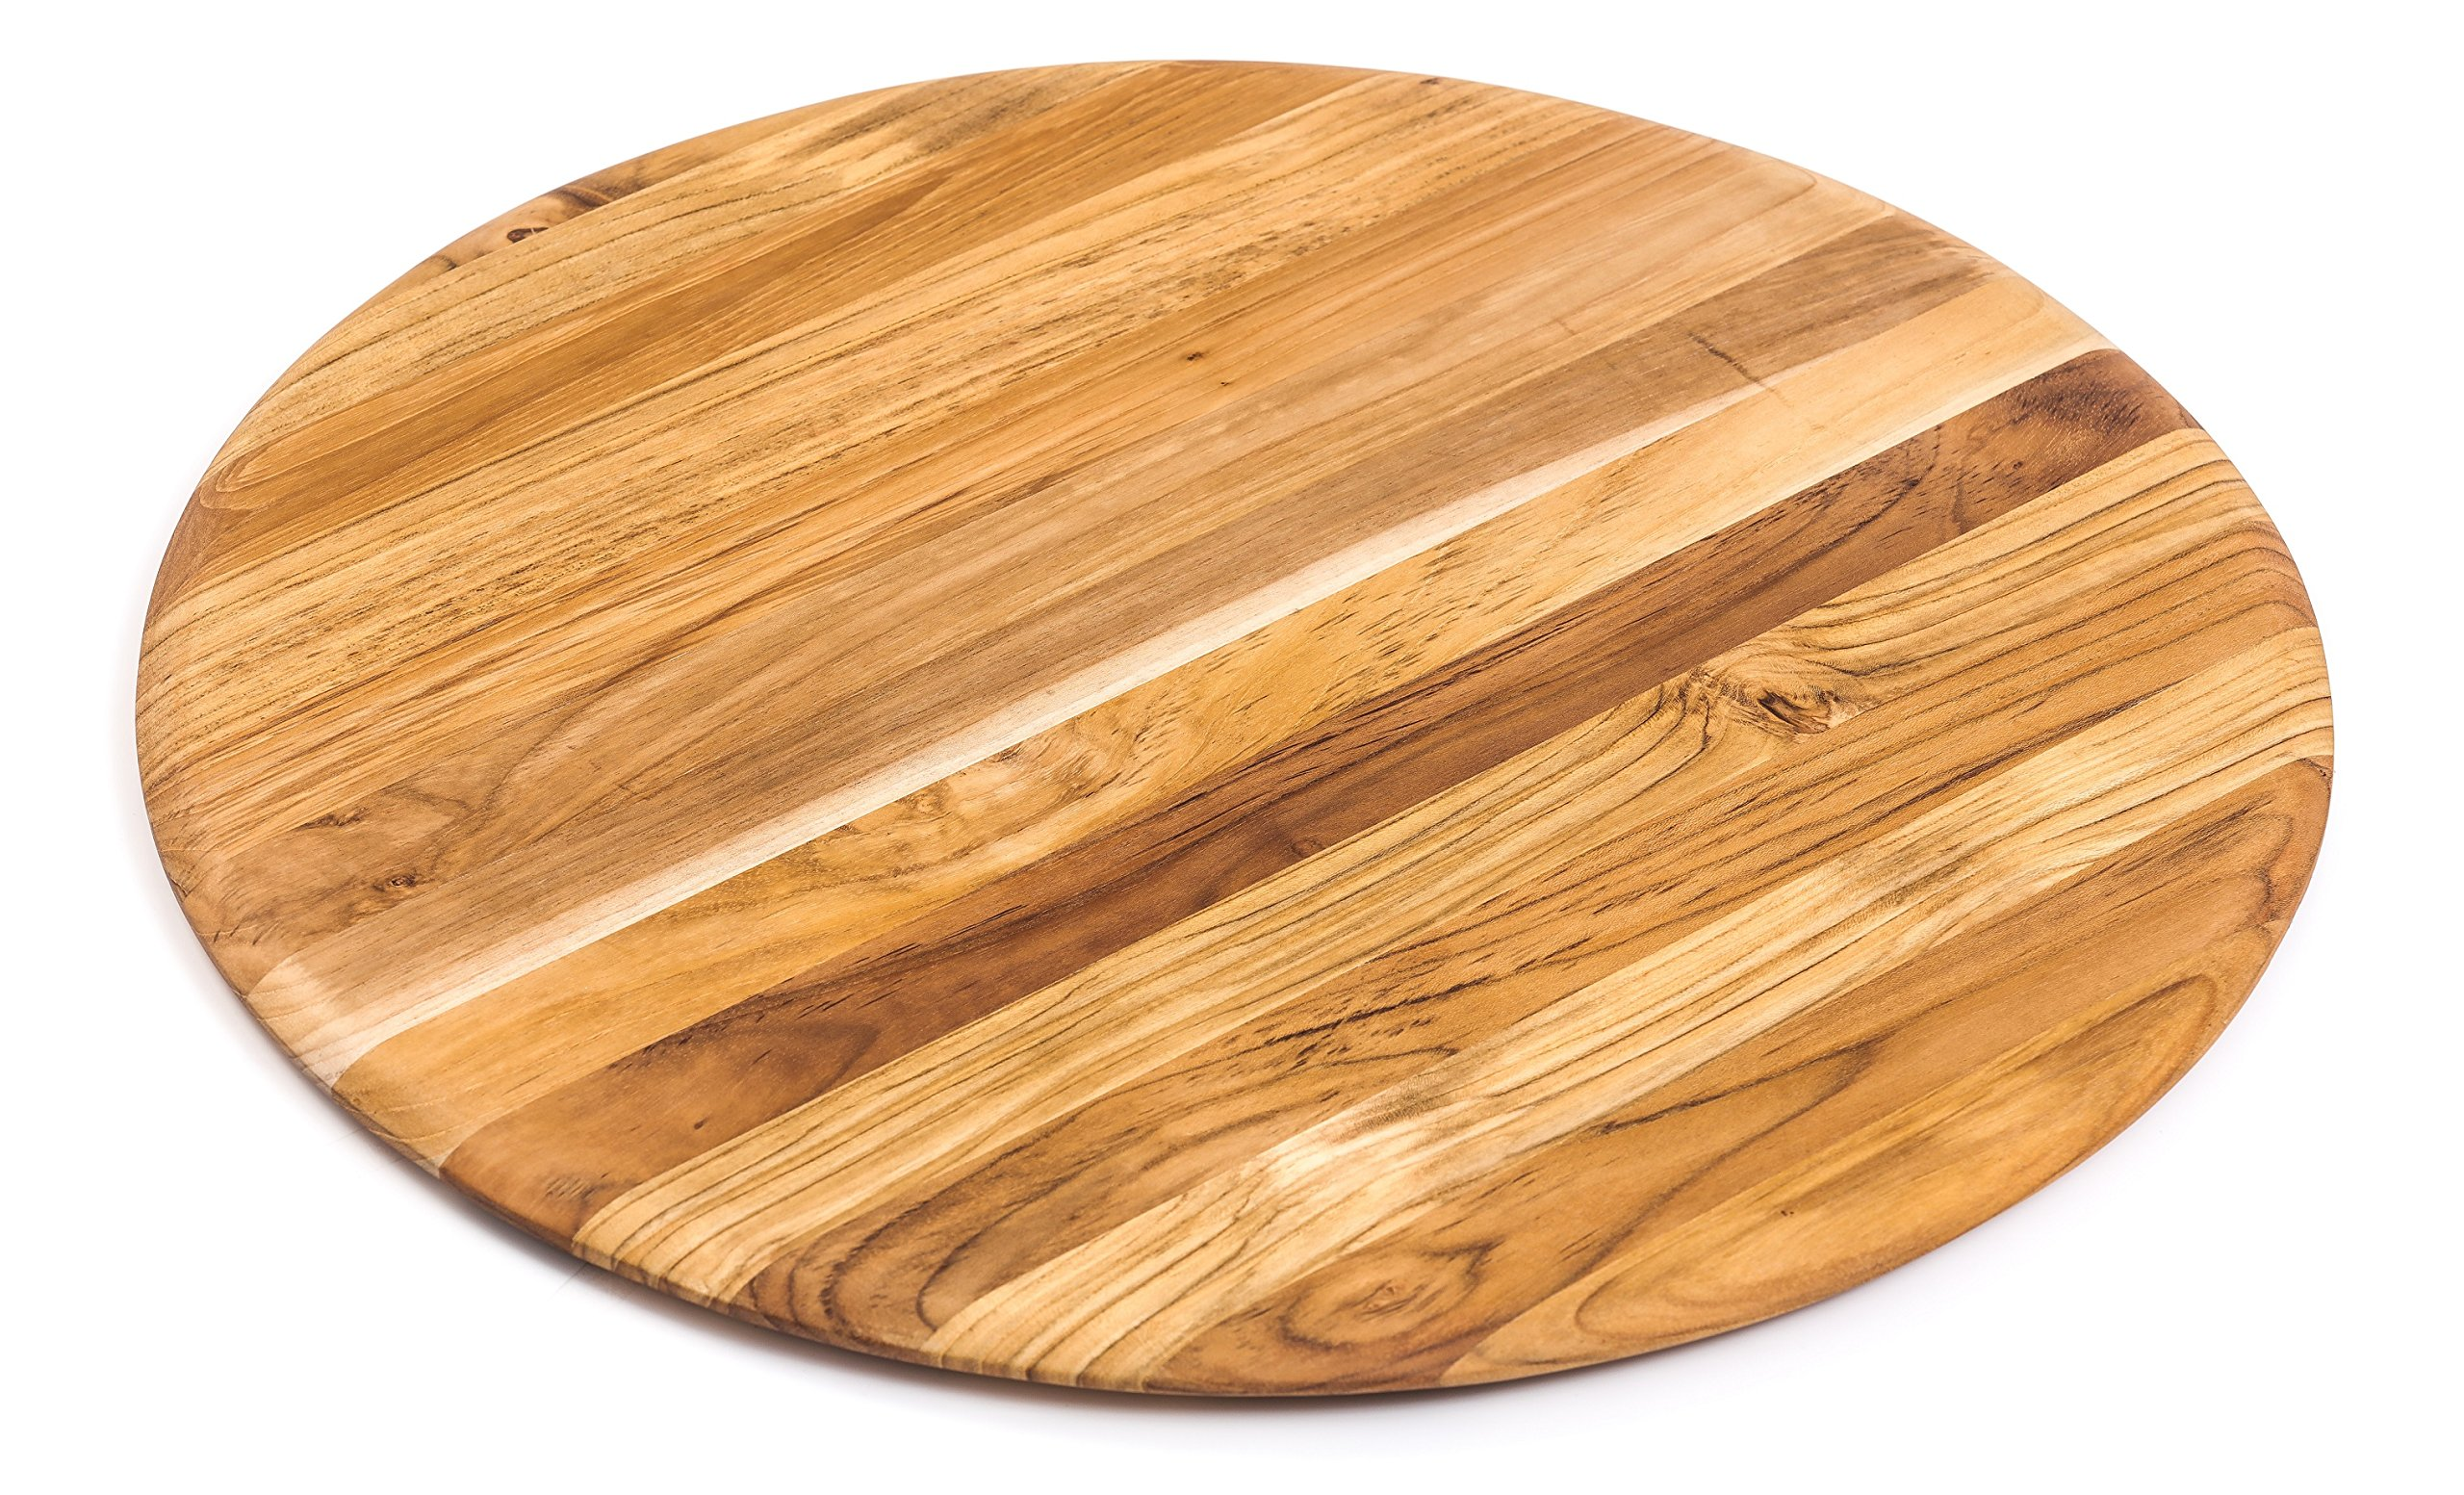 Teakhaus Cutting Board - Large Round Teak Woods Carving Board - Slim and Lightweight (18x18)